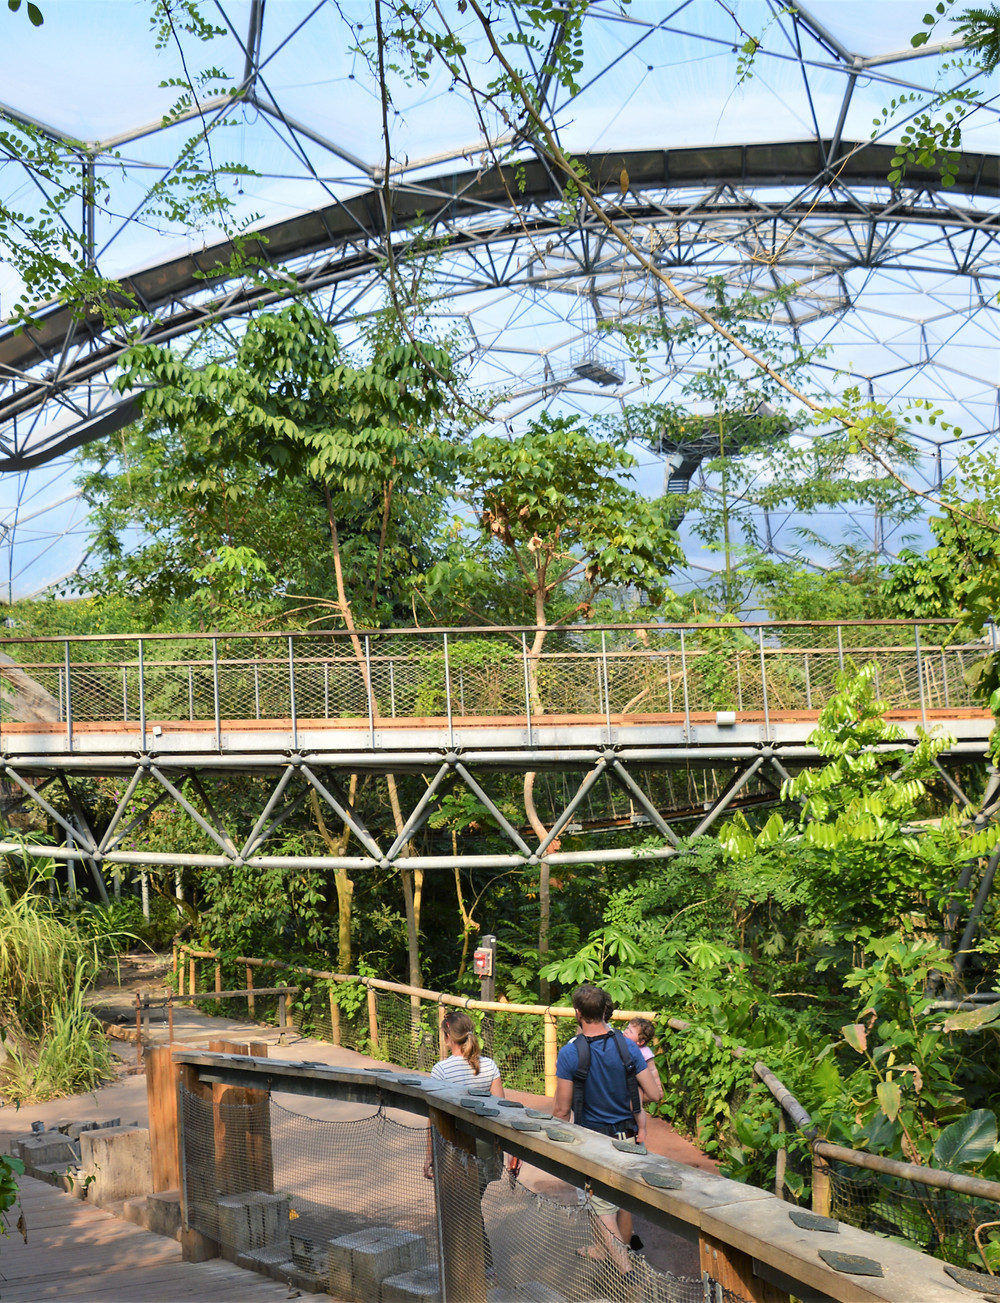 The Rainforest Canopy Walkway in the Rainforest Biome in the Eden Project in Cornwall, England